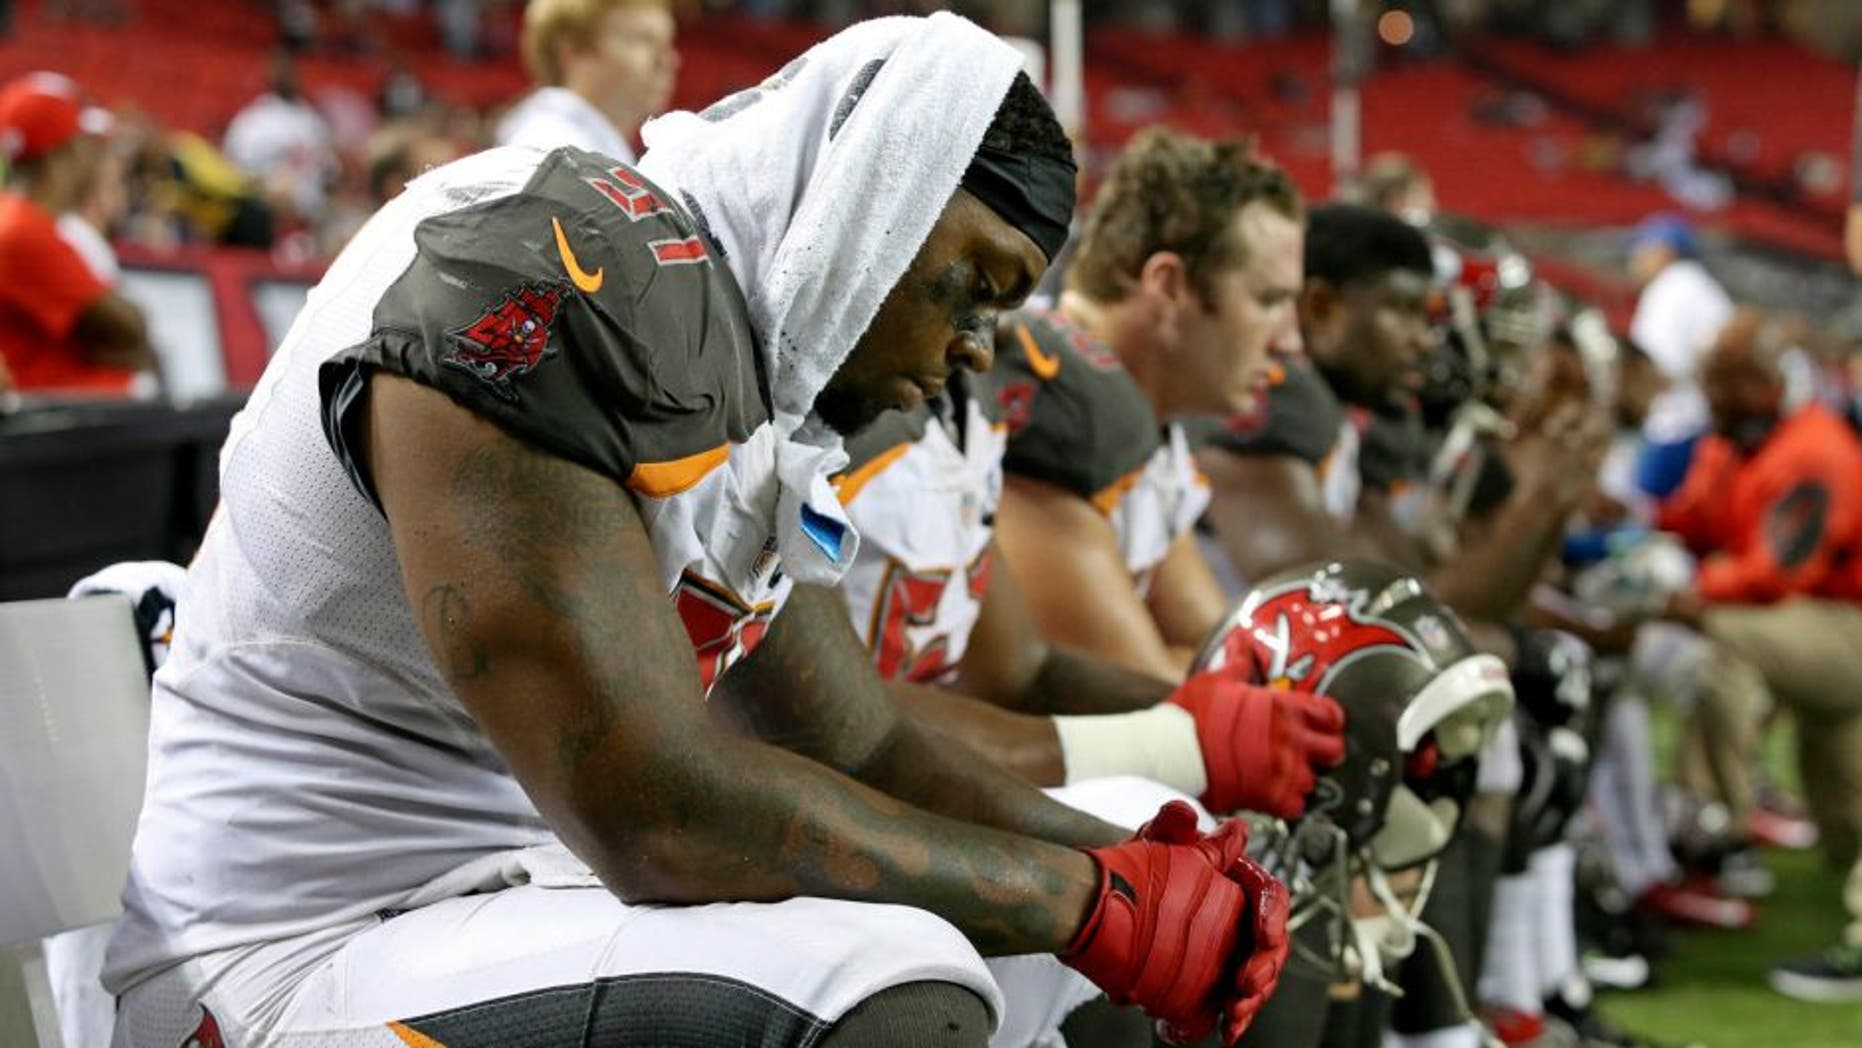 Sep 18, 2014; Atlanta, GA, USA; Tampa Bay Buccaneers defensive end Da'Quan Bowers (91) reacts on the sideline during their loss to the Atlanta Falcons in the fourth quarter at the Georgia Dome. The Falcons won 56-14. Mandatory Credit: Jason Getz-USA TODAY Sports